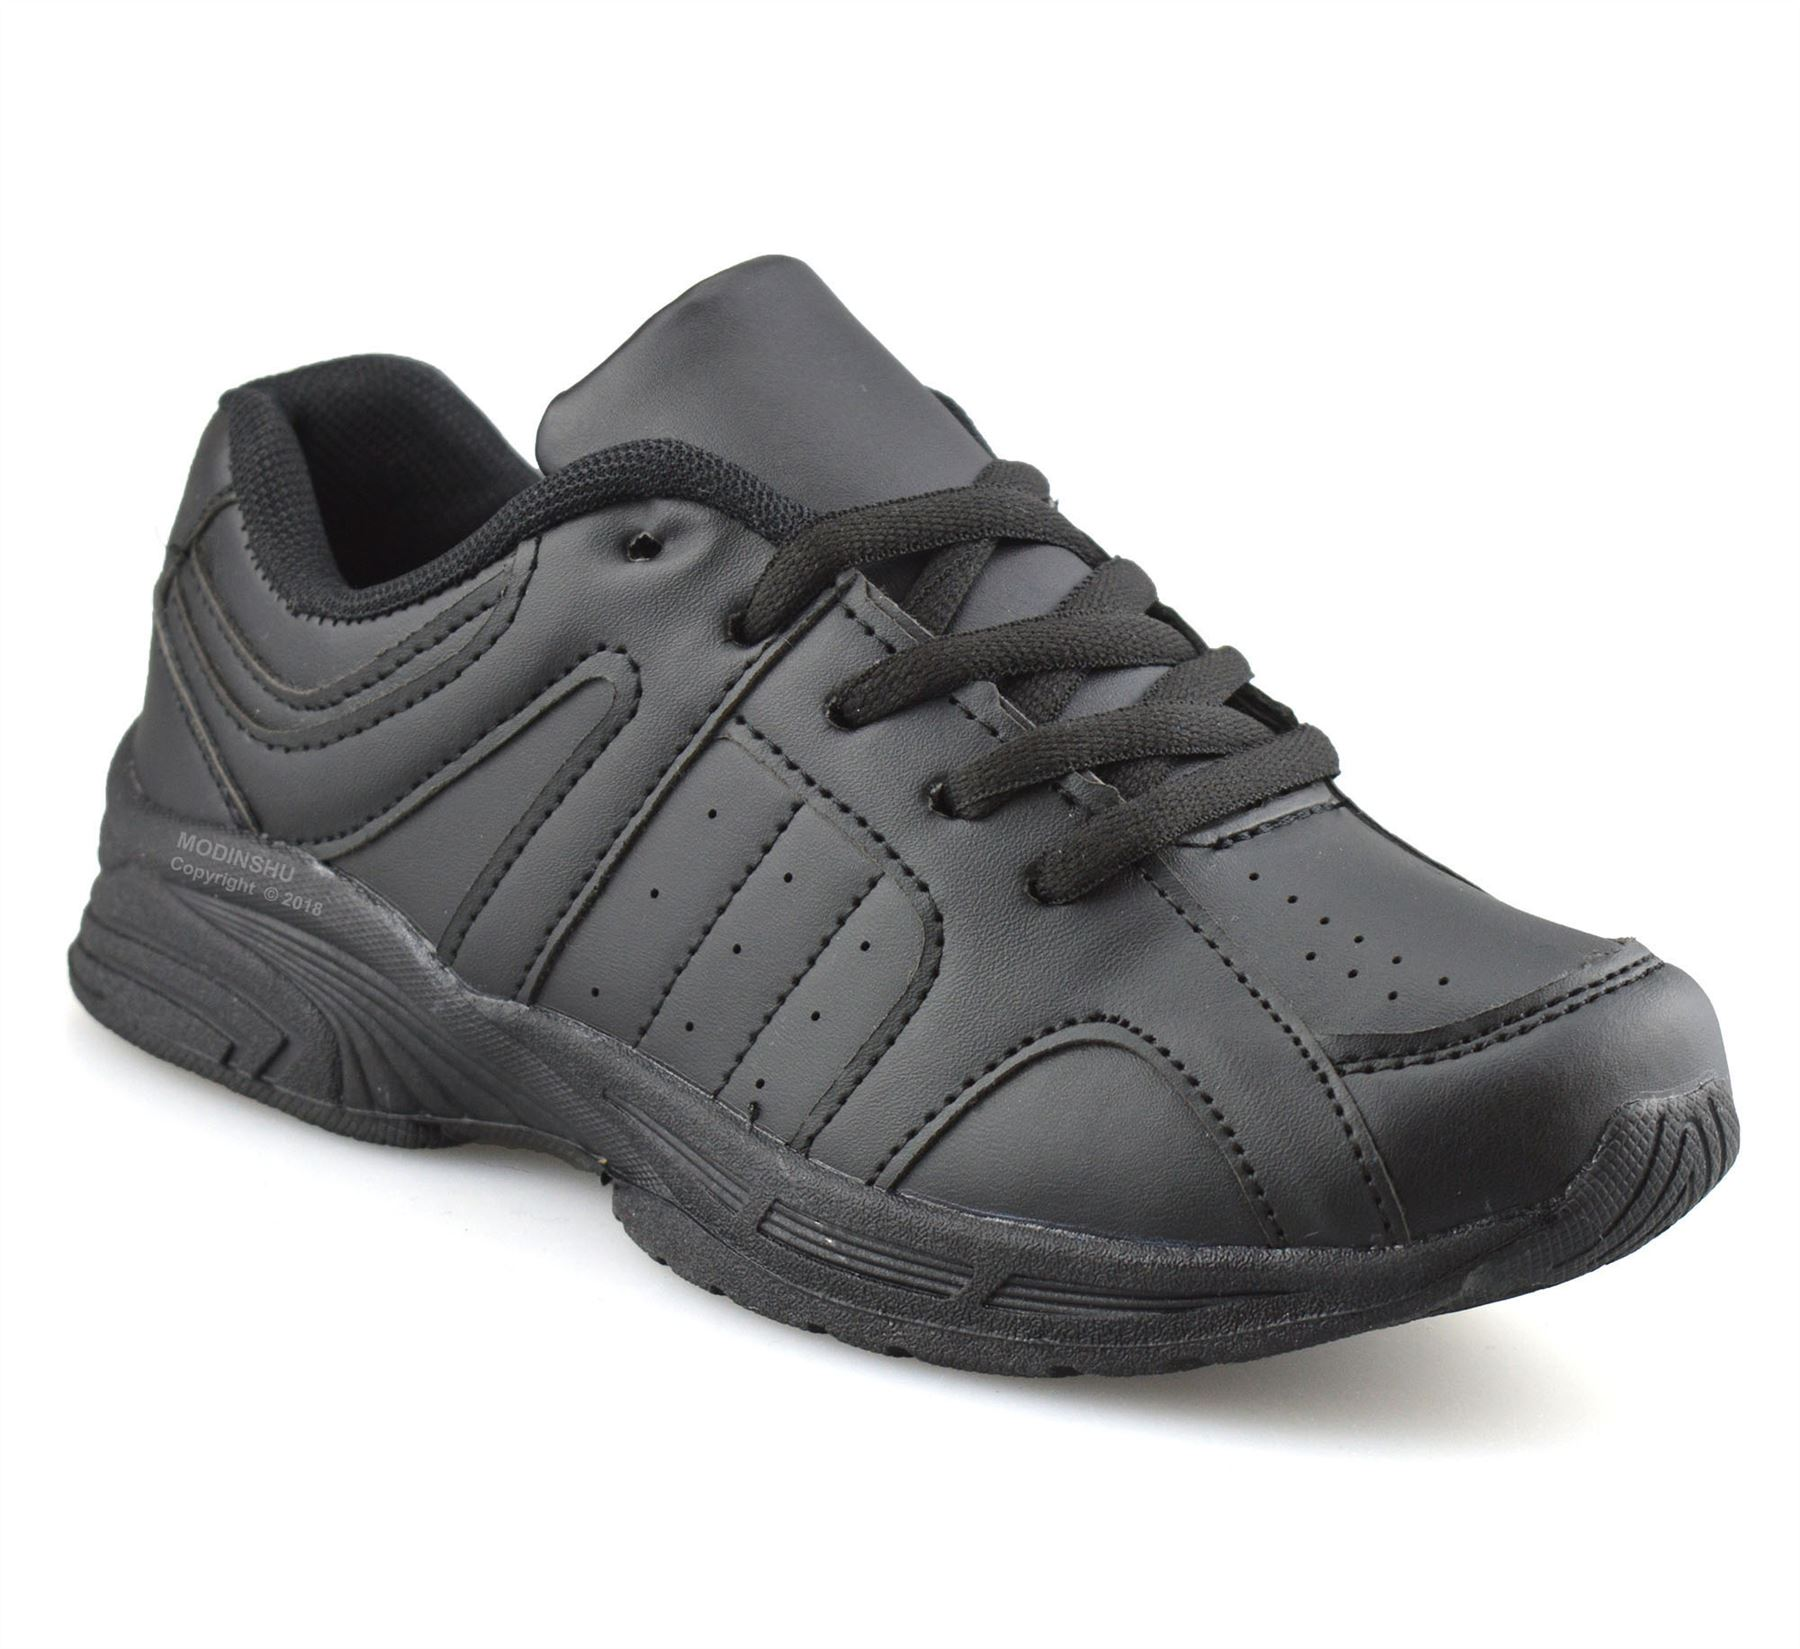 Boys-Kids-Casual-Smart-Formal-Lace-Up-Back-To-School-Sports-Trainers-Shoes-Size thumbnail 8